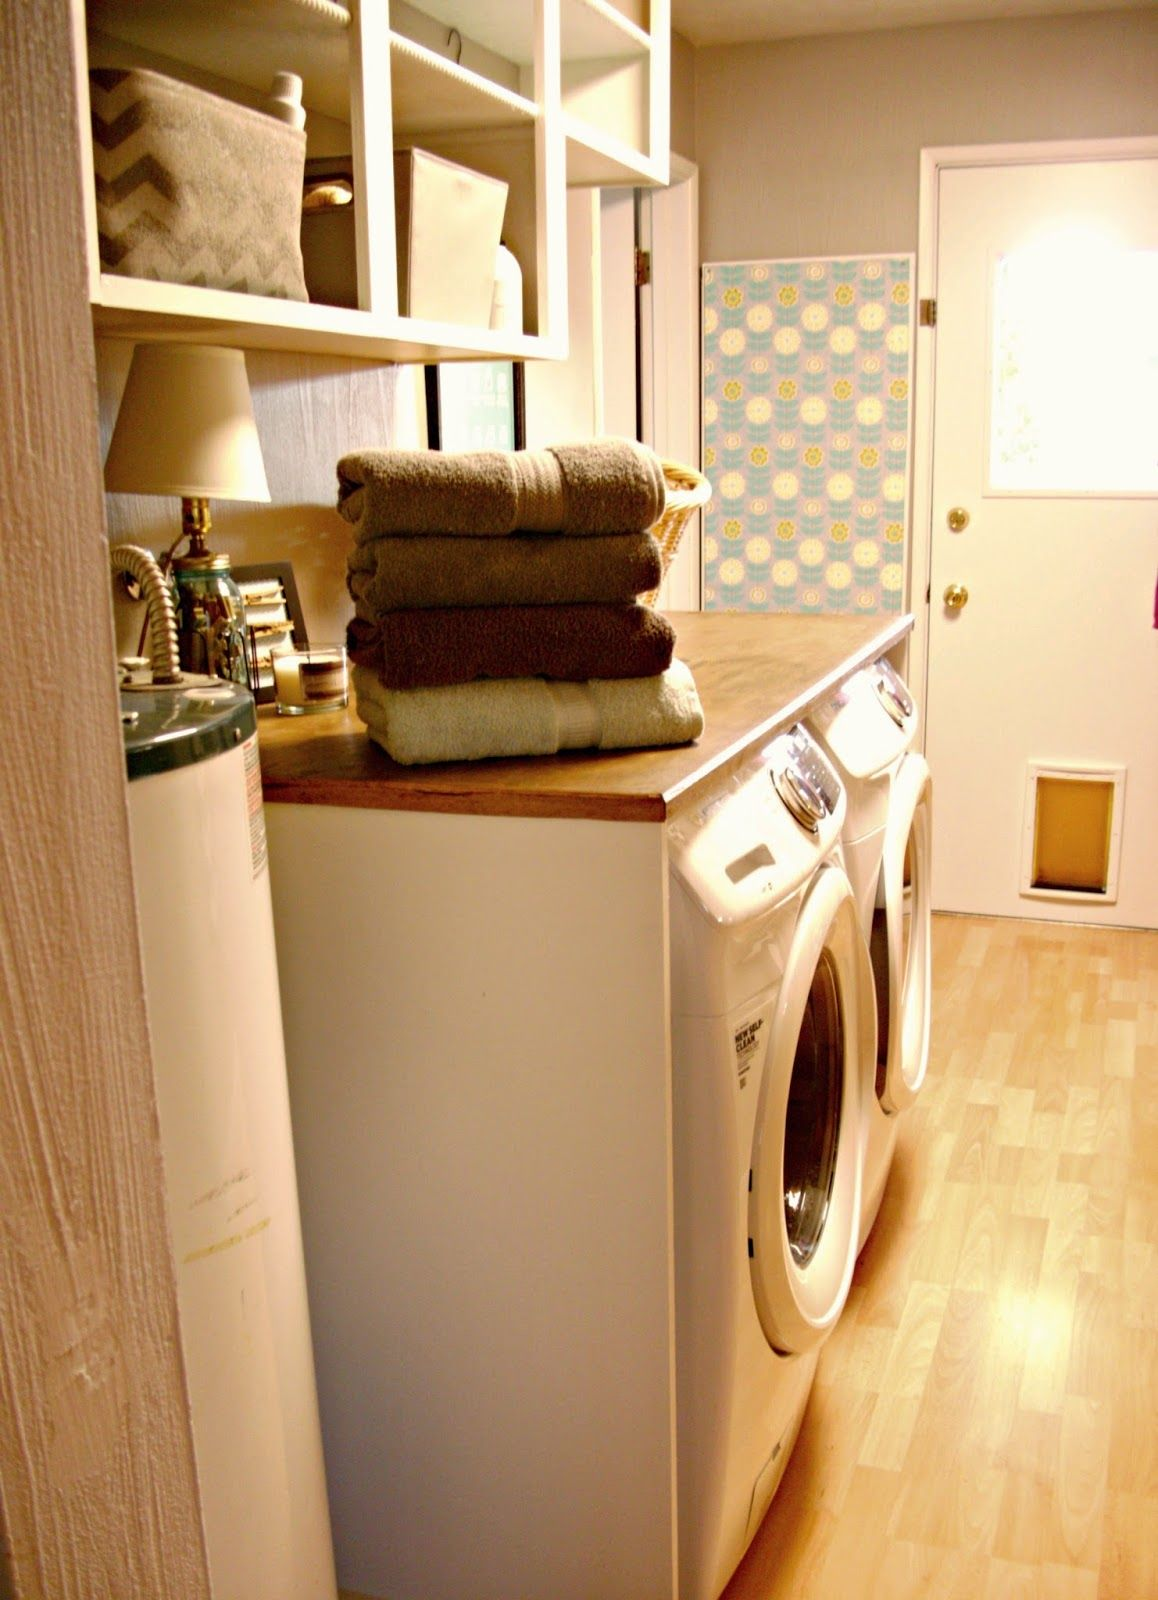 Laundry Room Redo Hiding The Electrical Panel Hot Water Heater Laundry Room Closet Dream Laundry Room Hide Water Heater